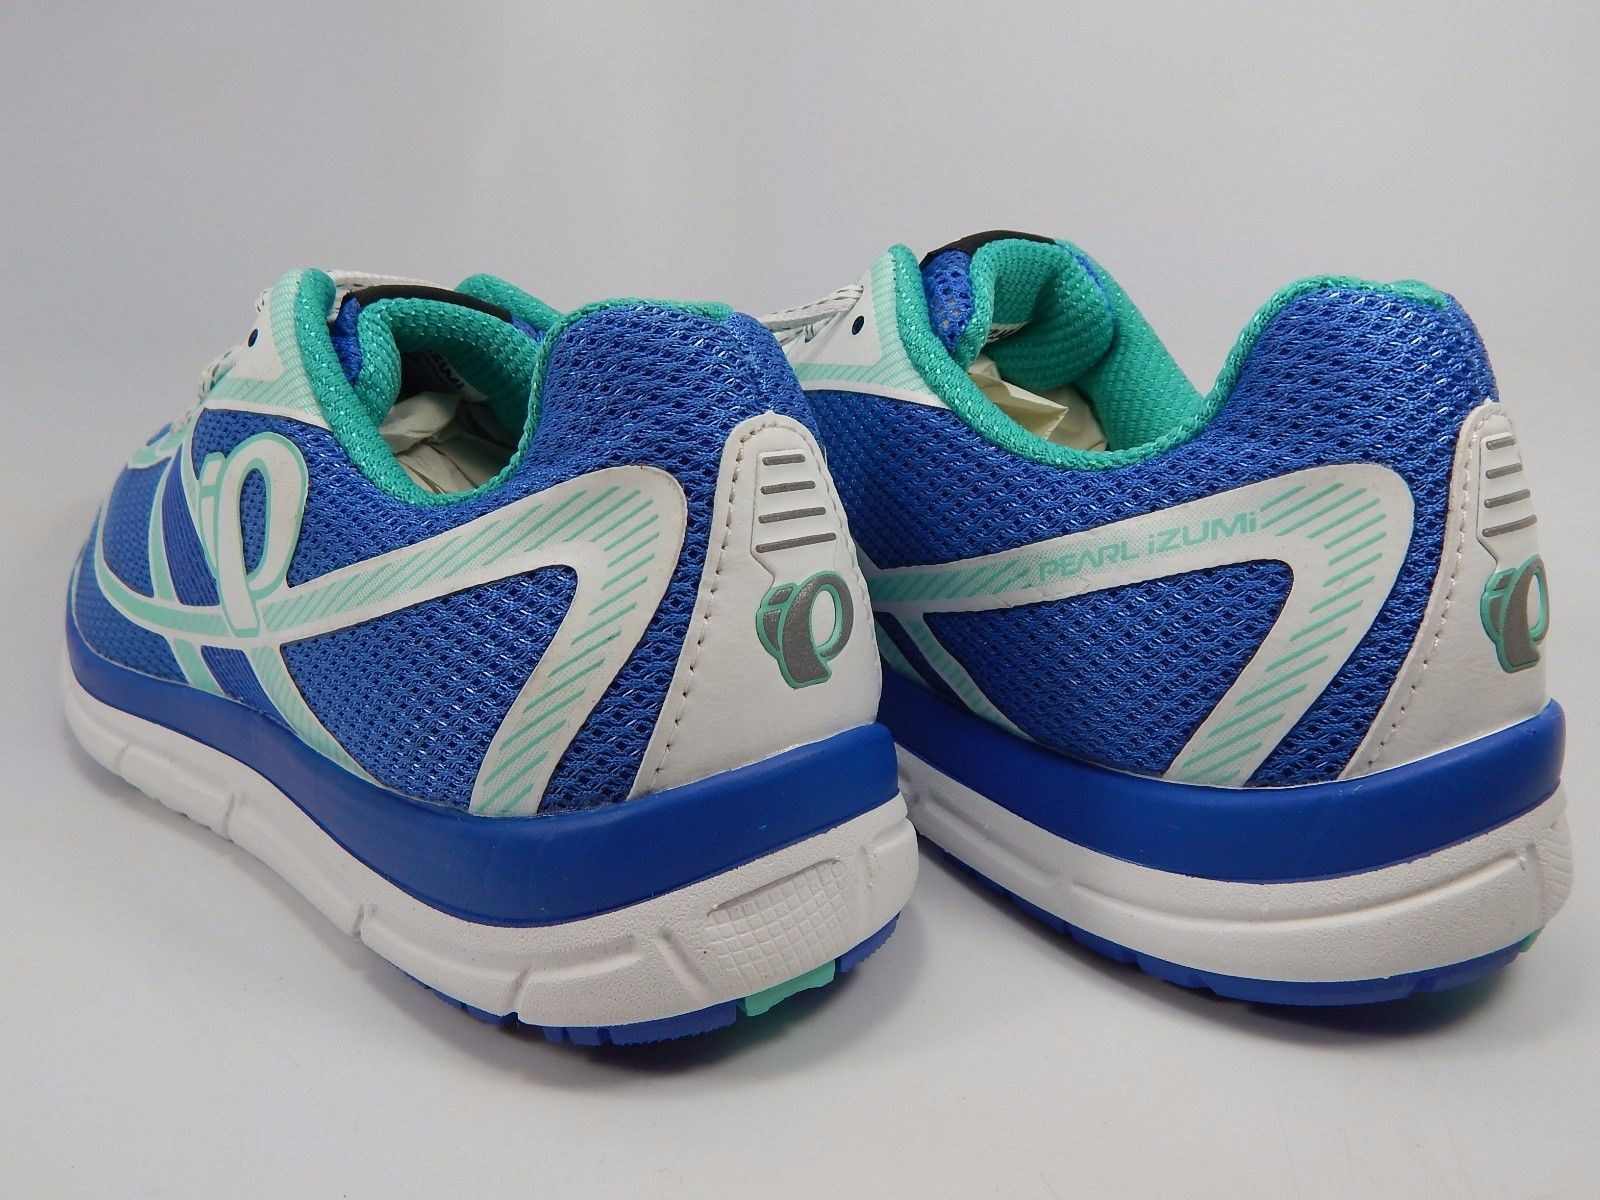 Pearl Izumi EM Road M 2 v 3 Women's Running Shoes Size US 10 M (B) EU 42 Blue